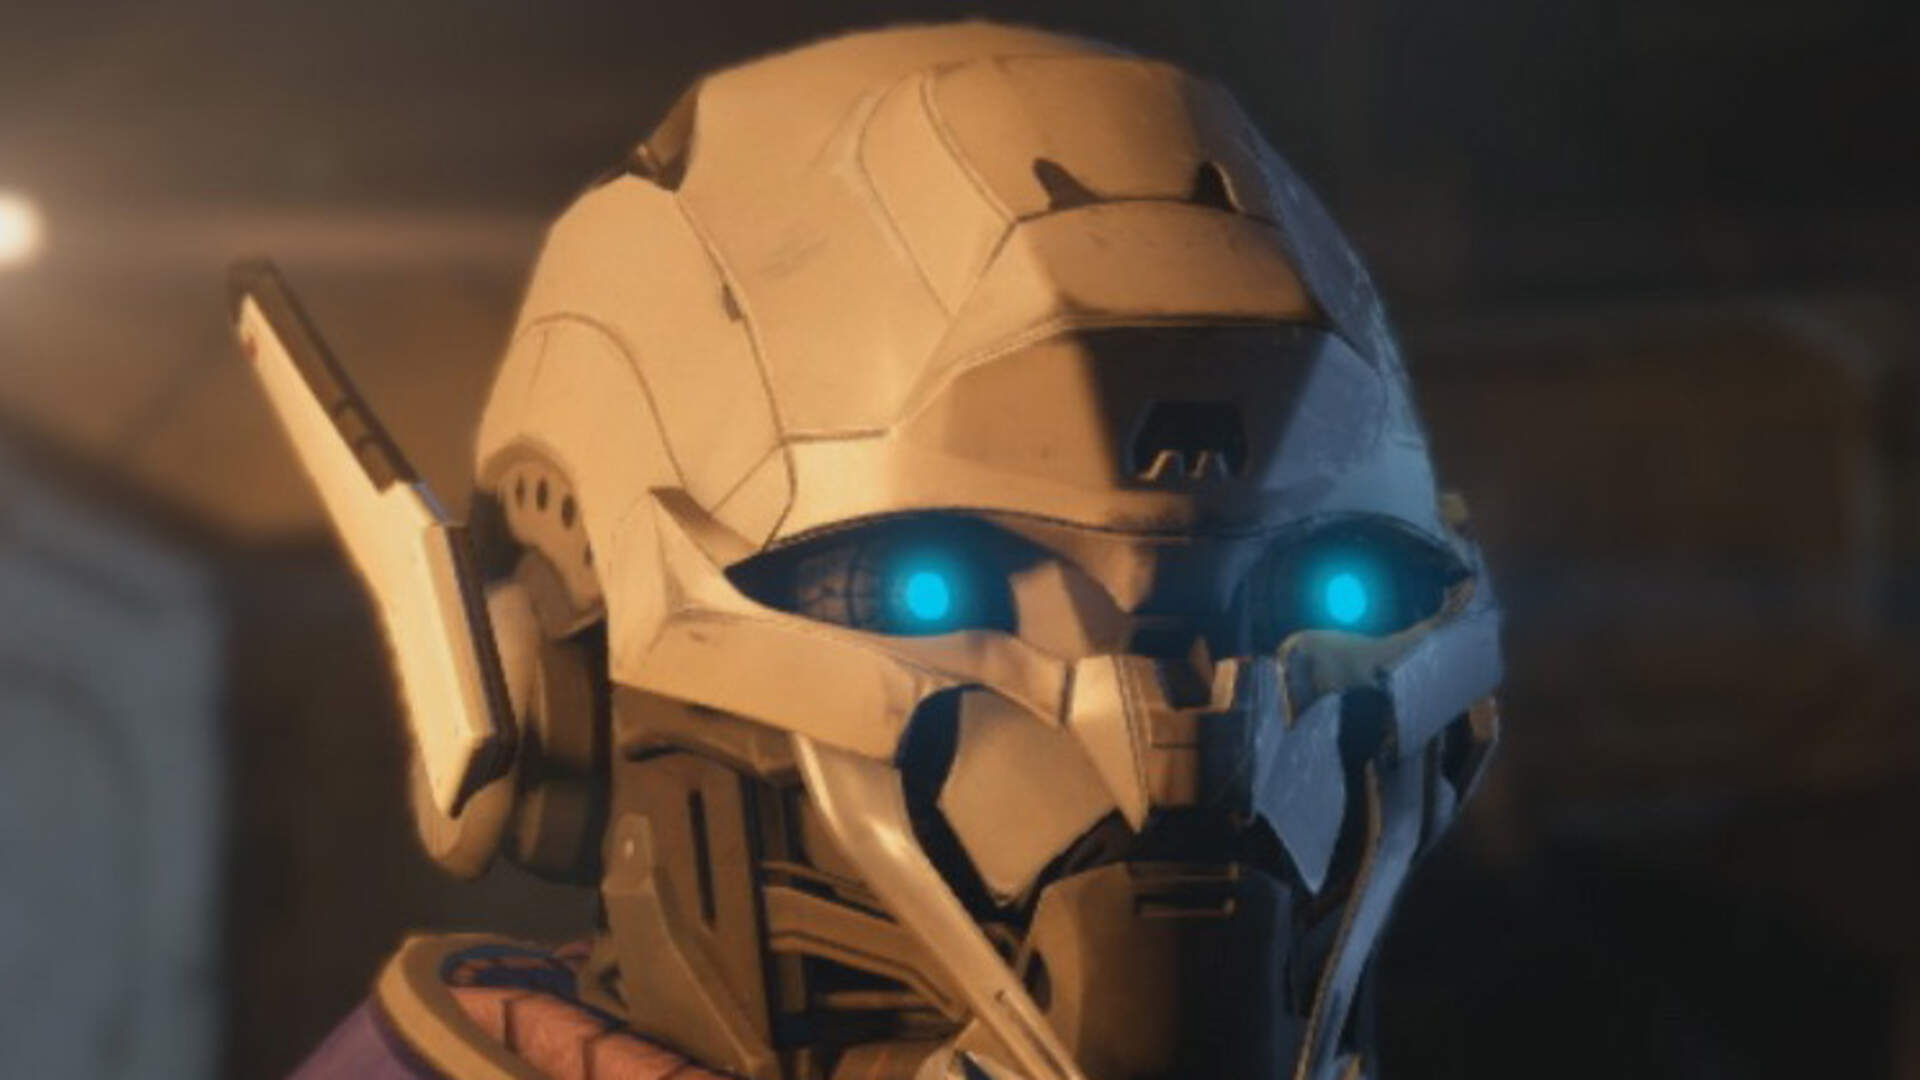 Destiny: The Taken King Shield Brothers Strike - Goliath Tank, Cabal Brothers